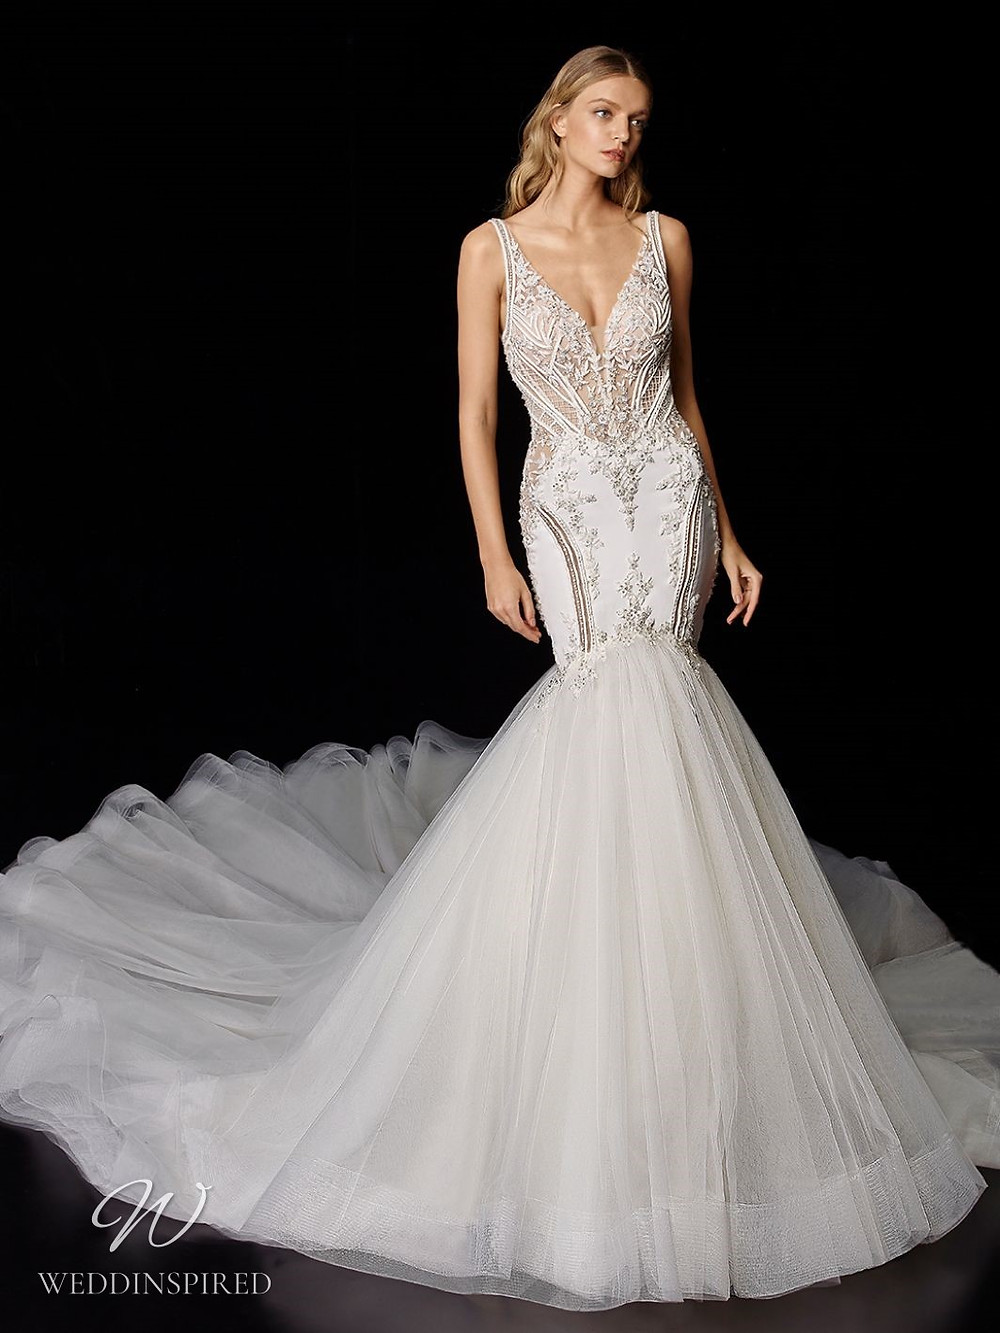 An Enzoani lace and tulle mermaid wedding dress with a train